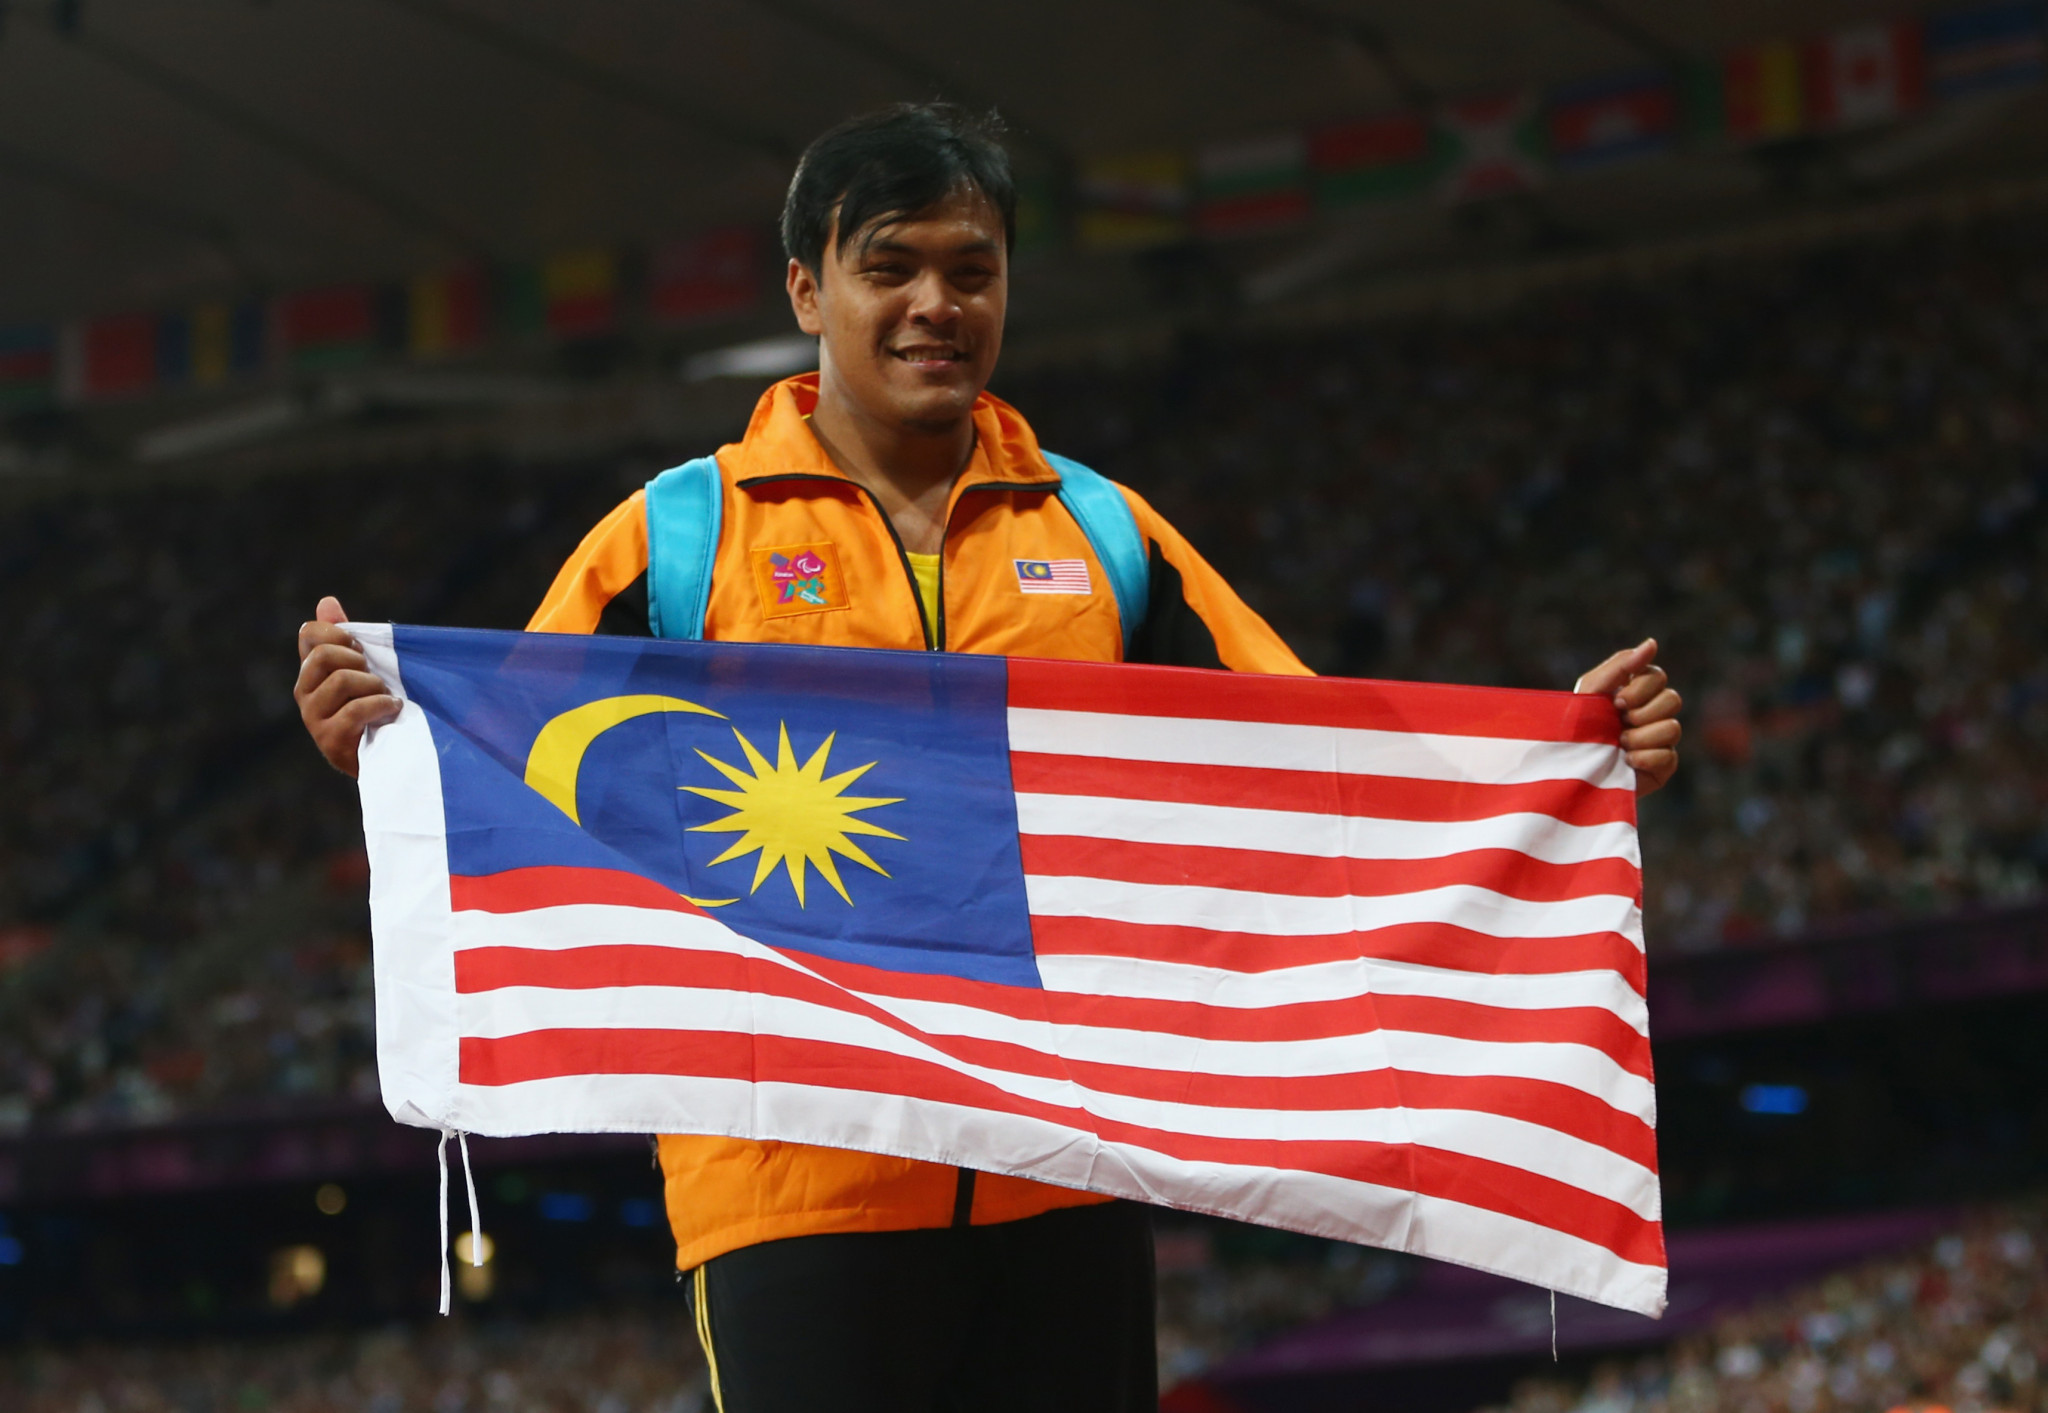 Investigation into Zolkefli's Tokyo 2020 Paralympics disqualification complete